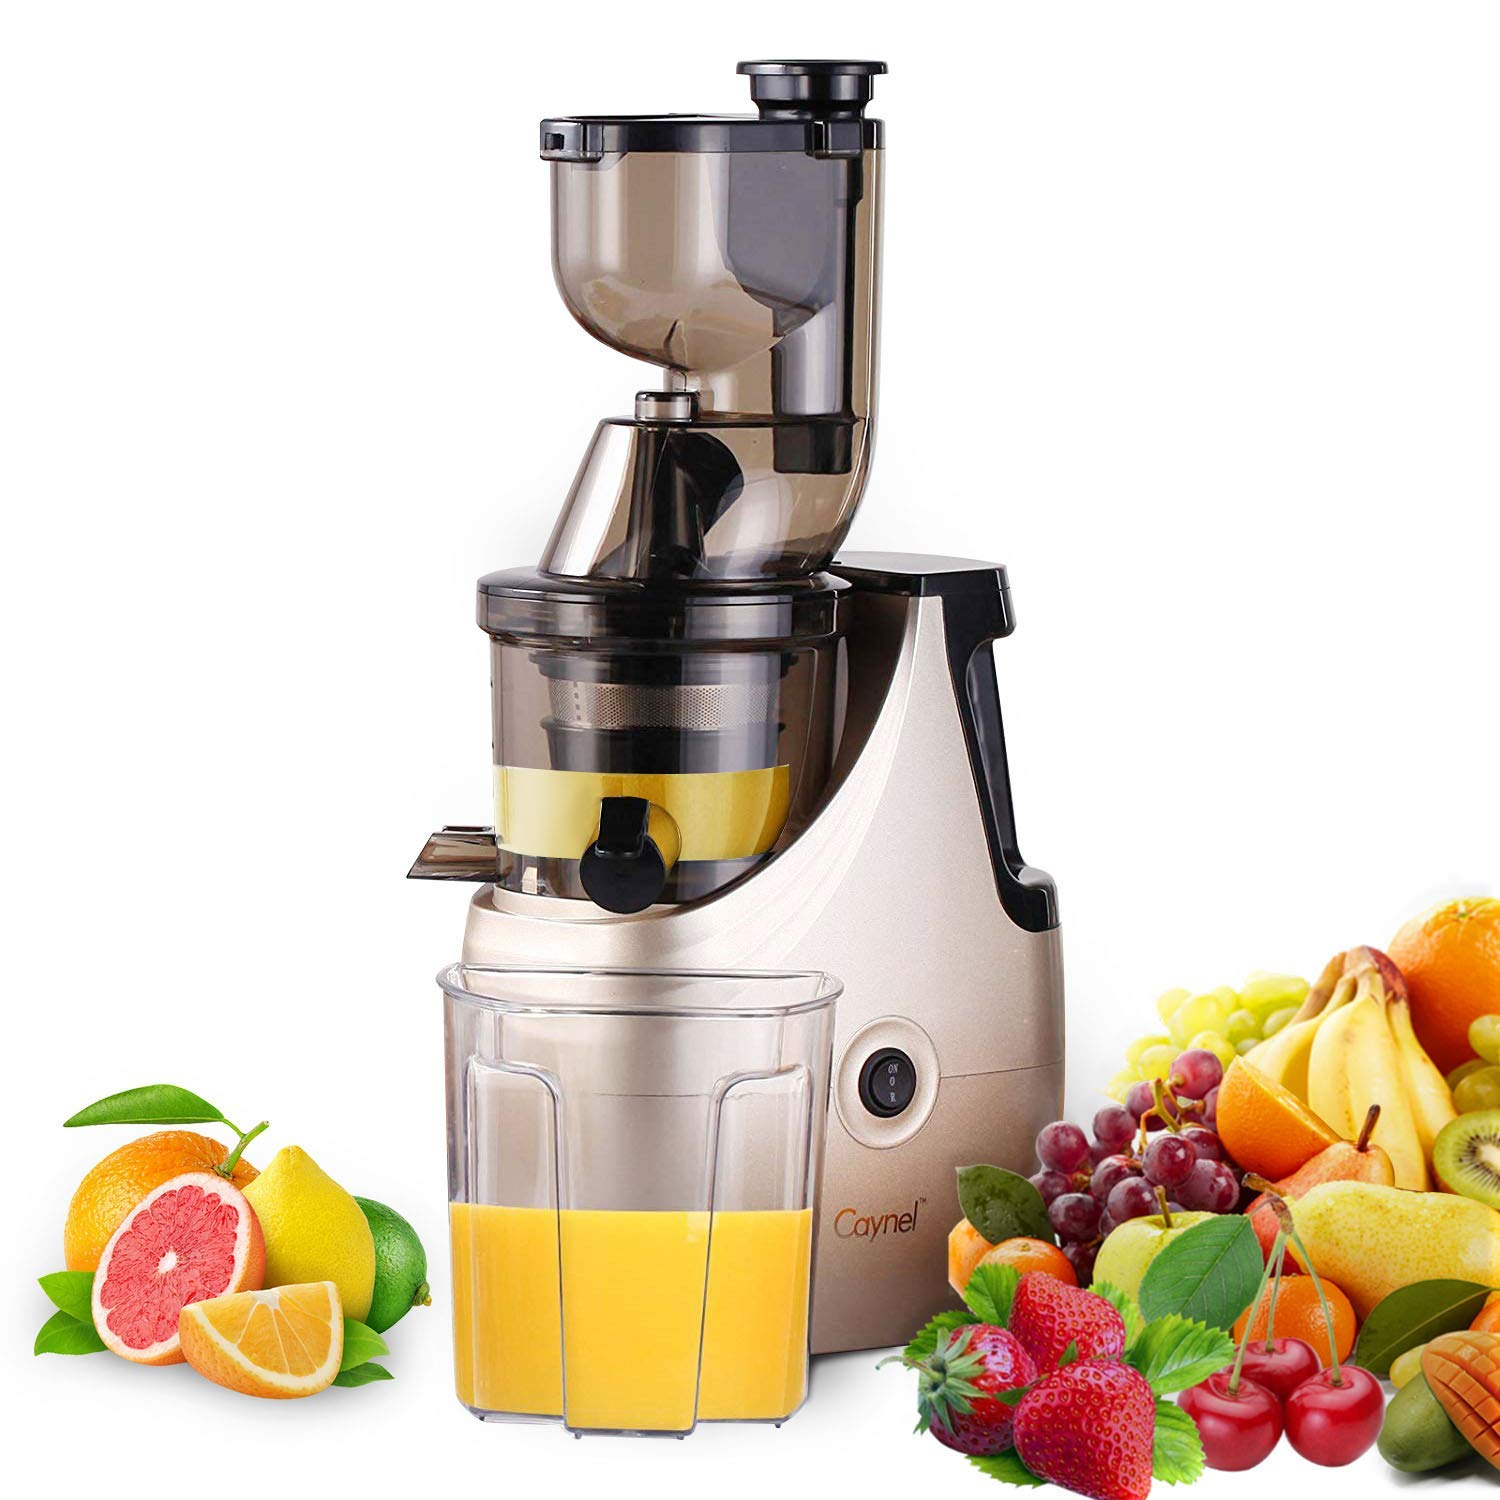 """Slow Masticating Juicer Caynel Cold Press Extractor with 3"""" Wide Chute for Fruits, Vegetables and Herbs, Quiet Durable Motor with Reverse Function, Smoothie Strainer Included, High Yield Vertical Juicer Easy Cleaning , BPA Free(Champagne)"""